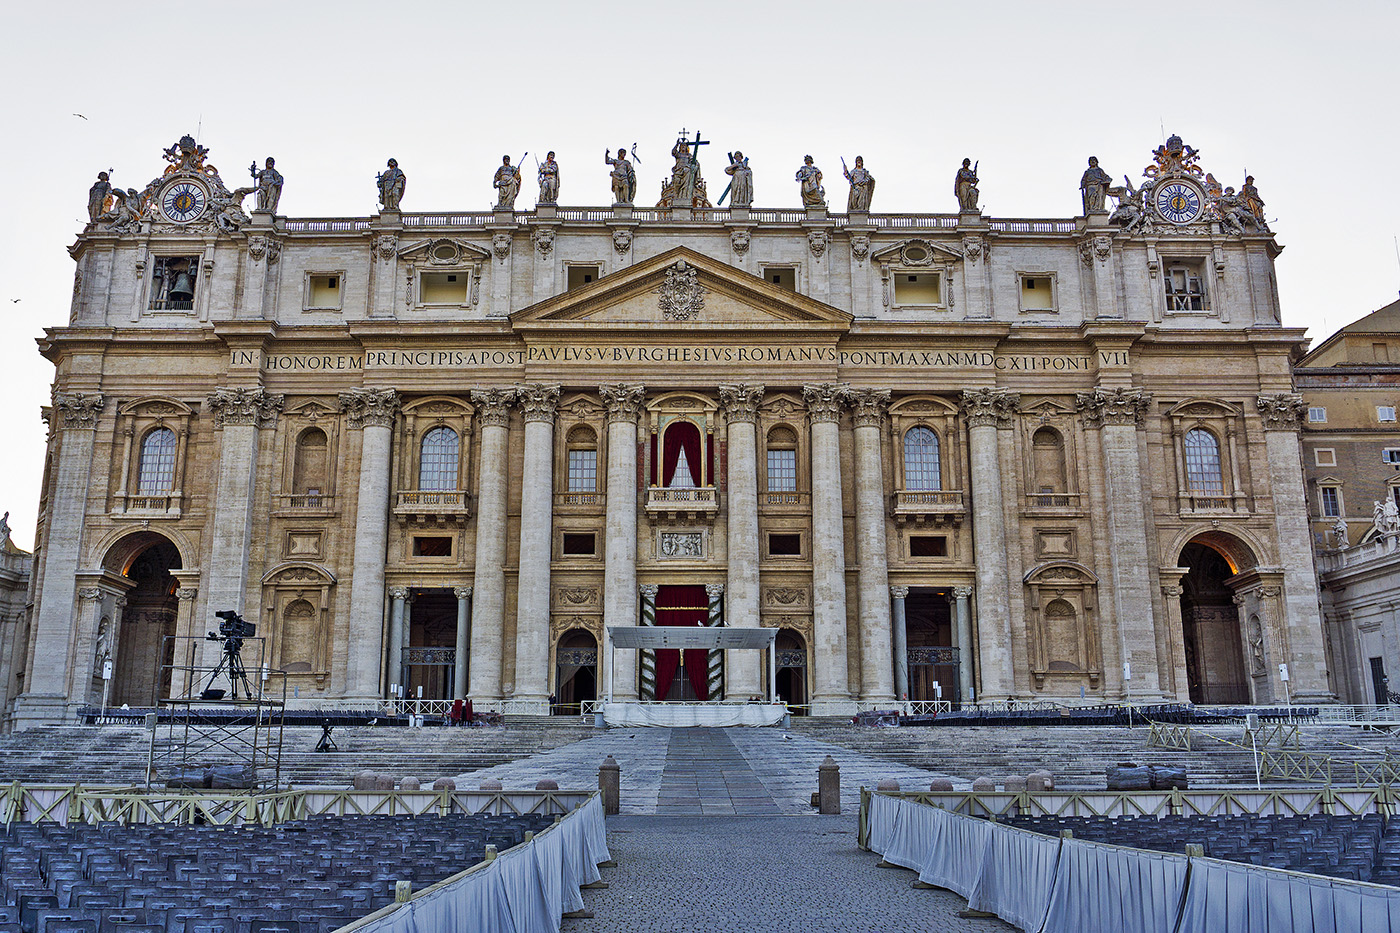 St. Peter's Basilica at The Vatican